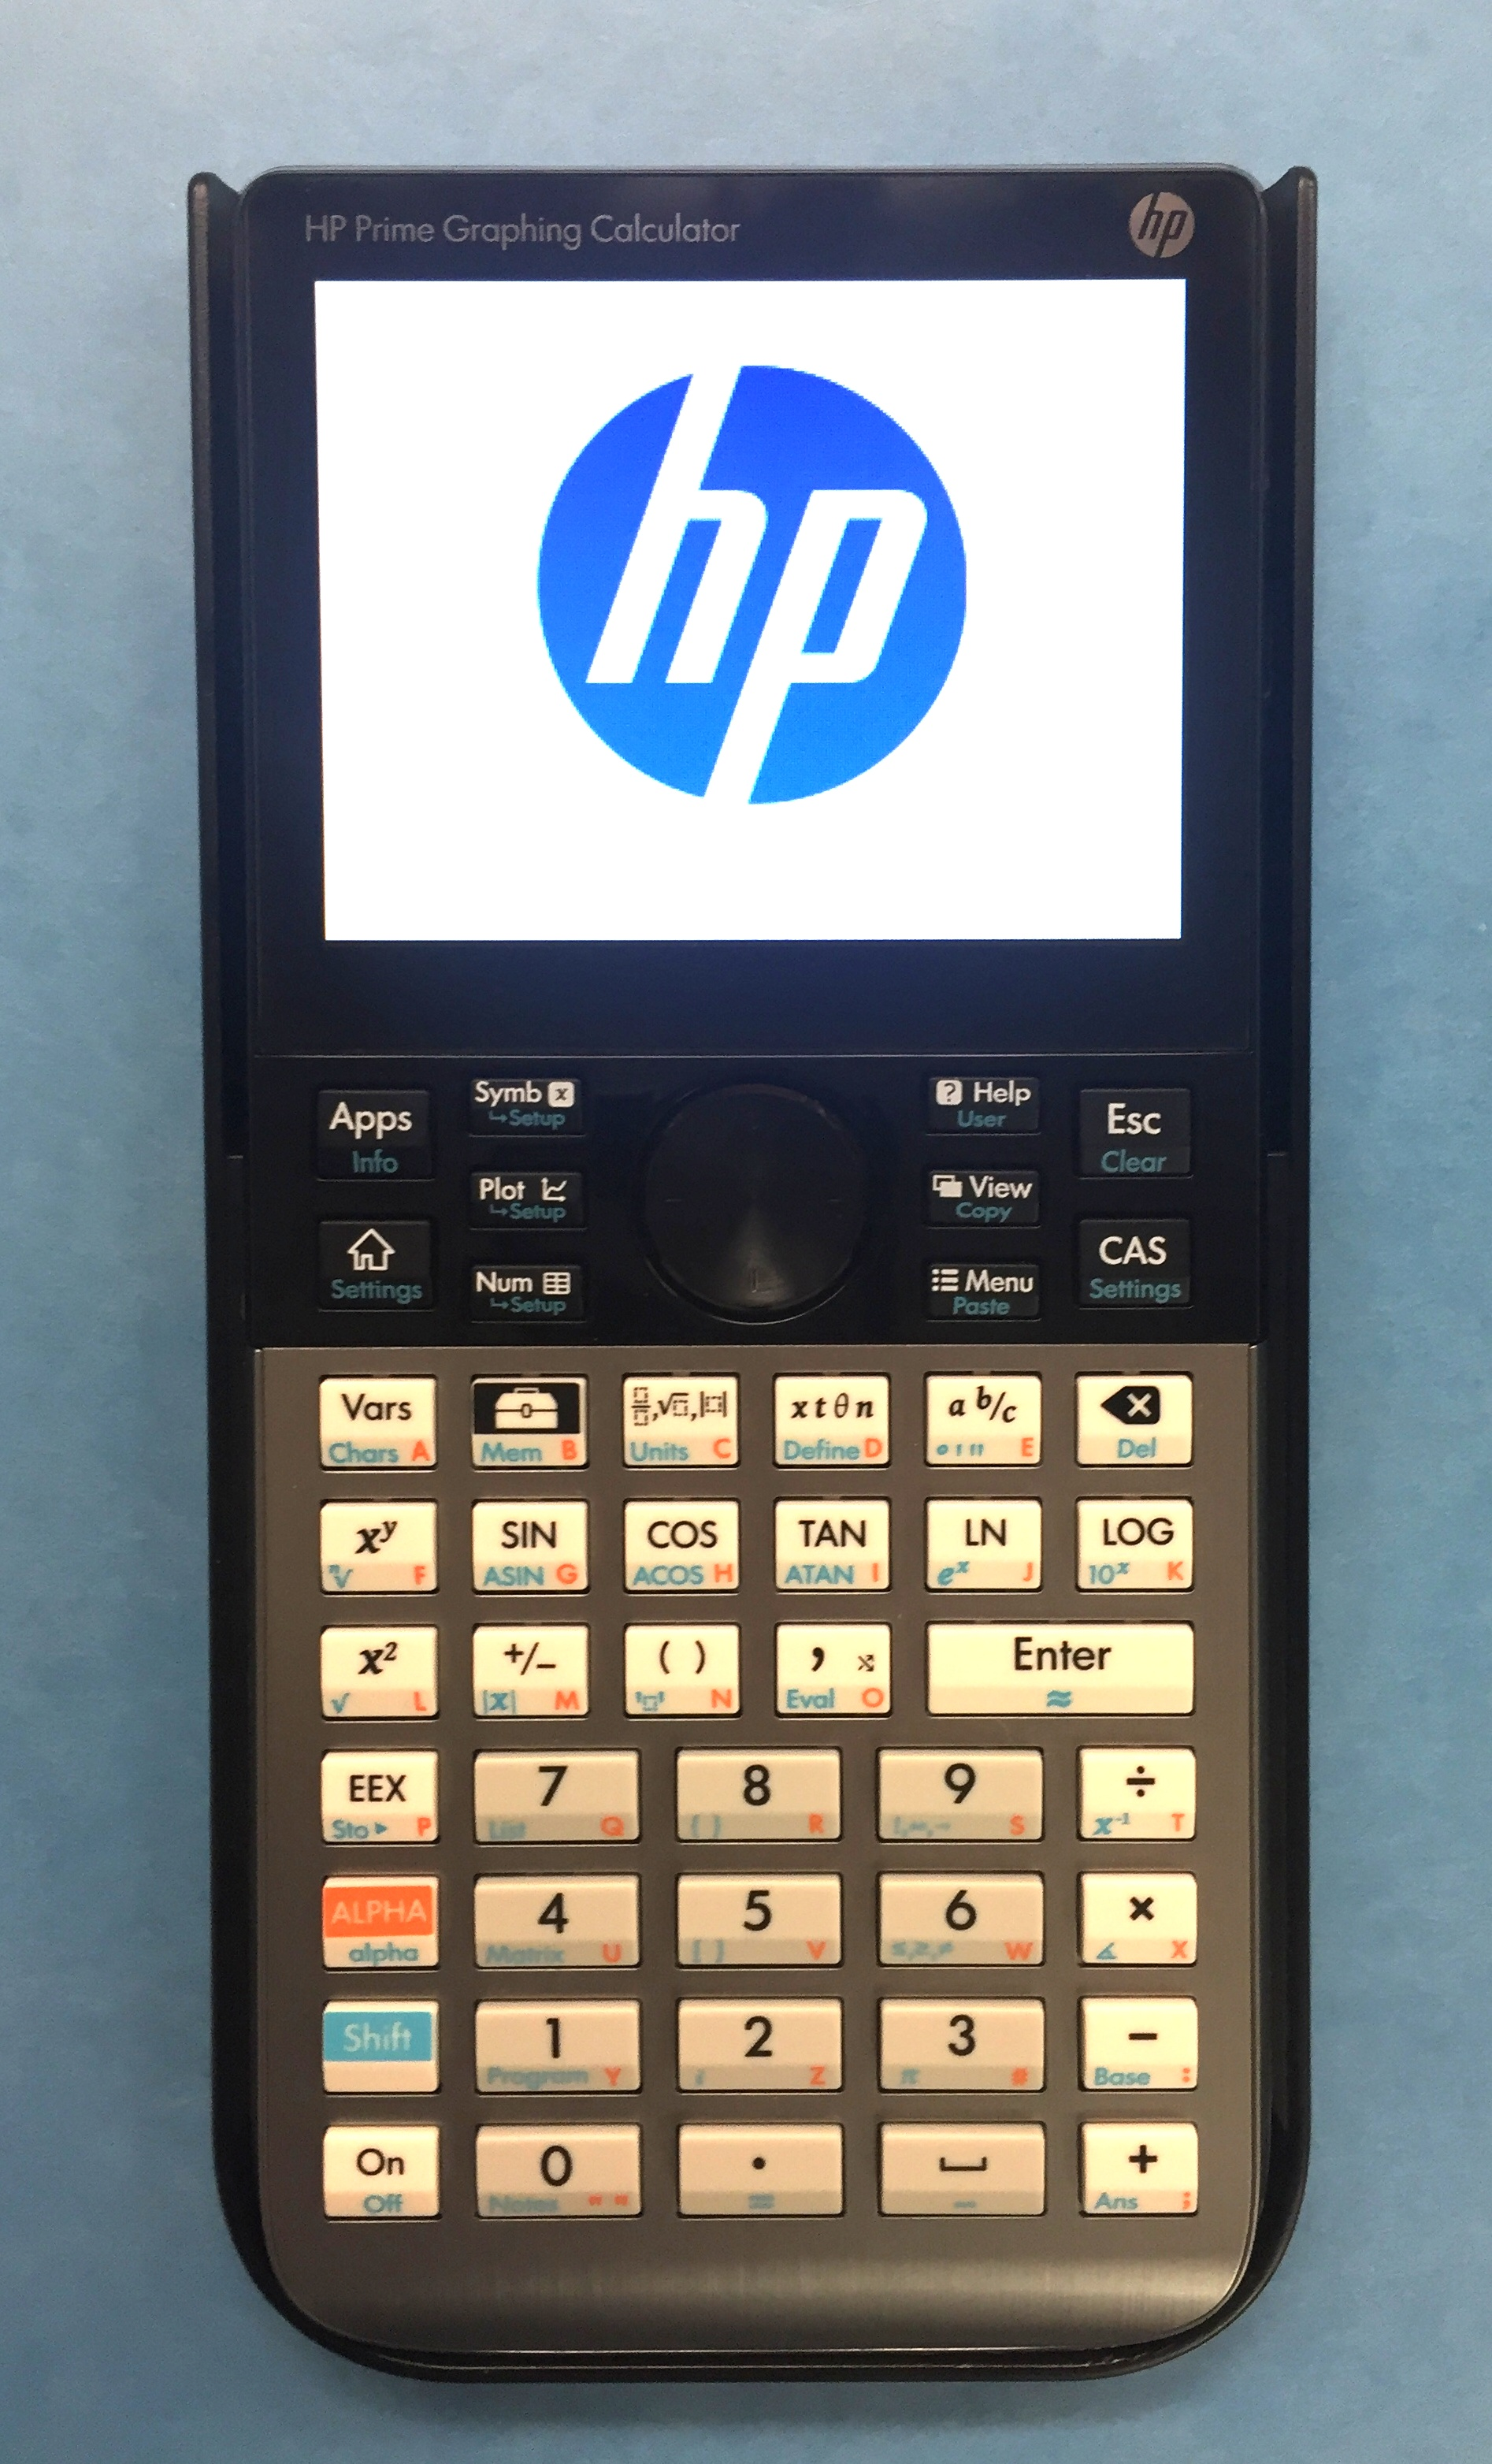 File:HP Prime Graphing Calculator (39640538872) jpg - Wikimedia Commons